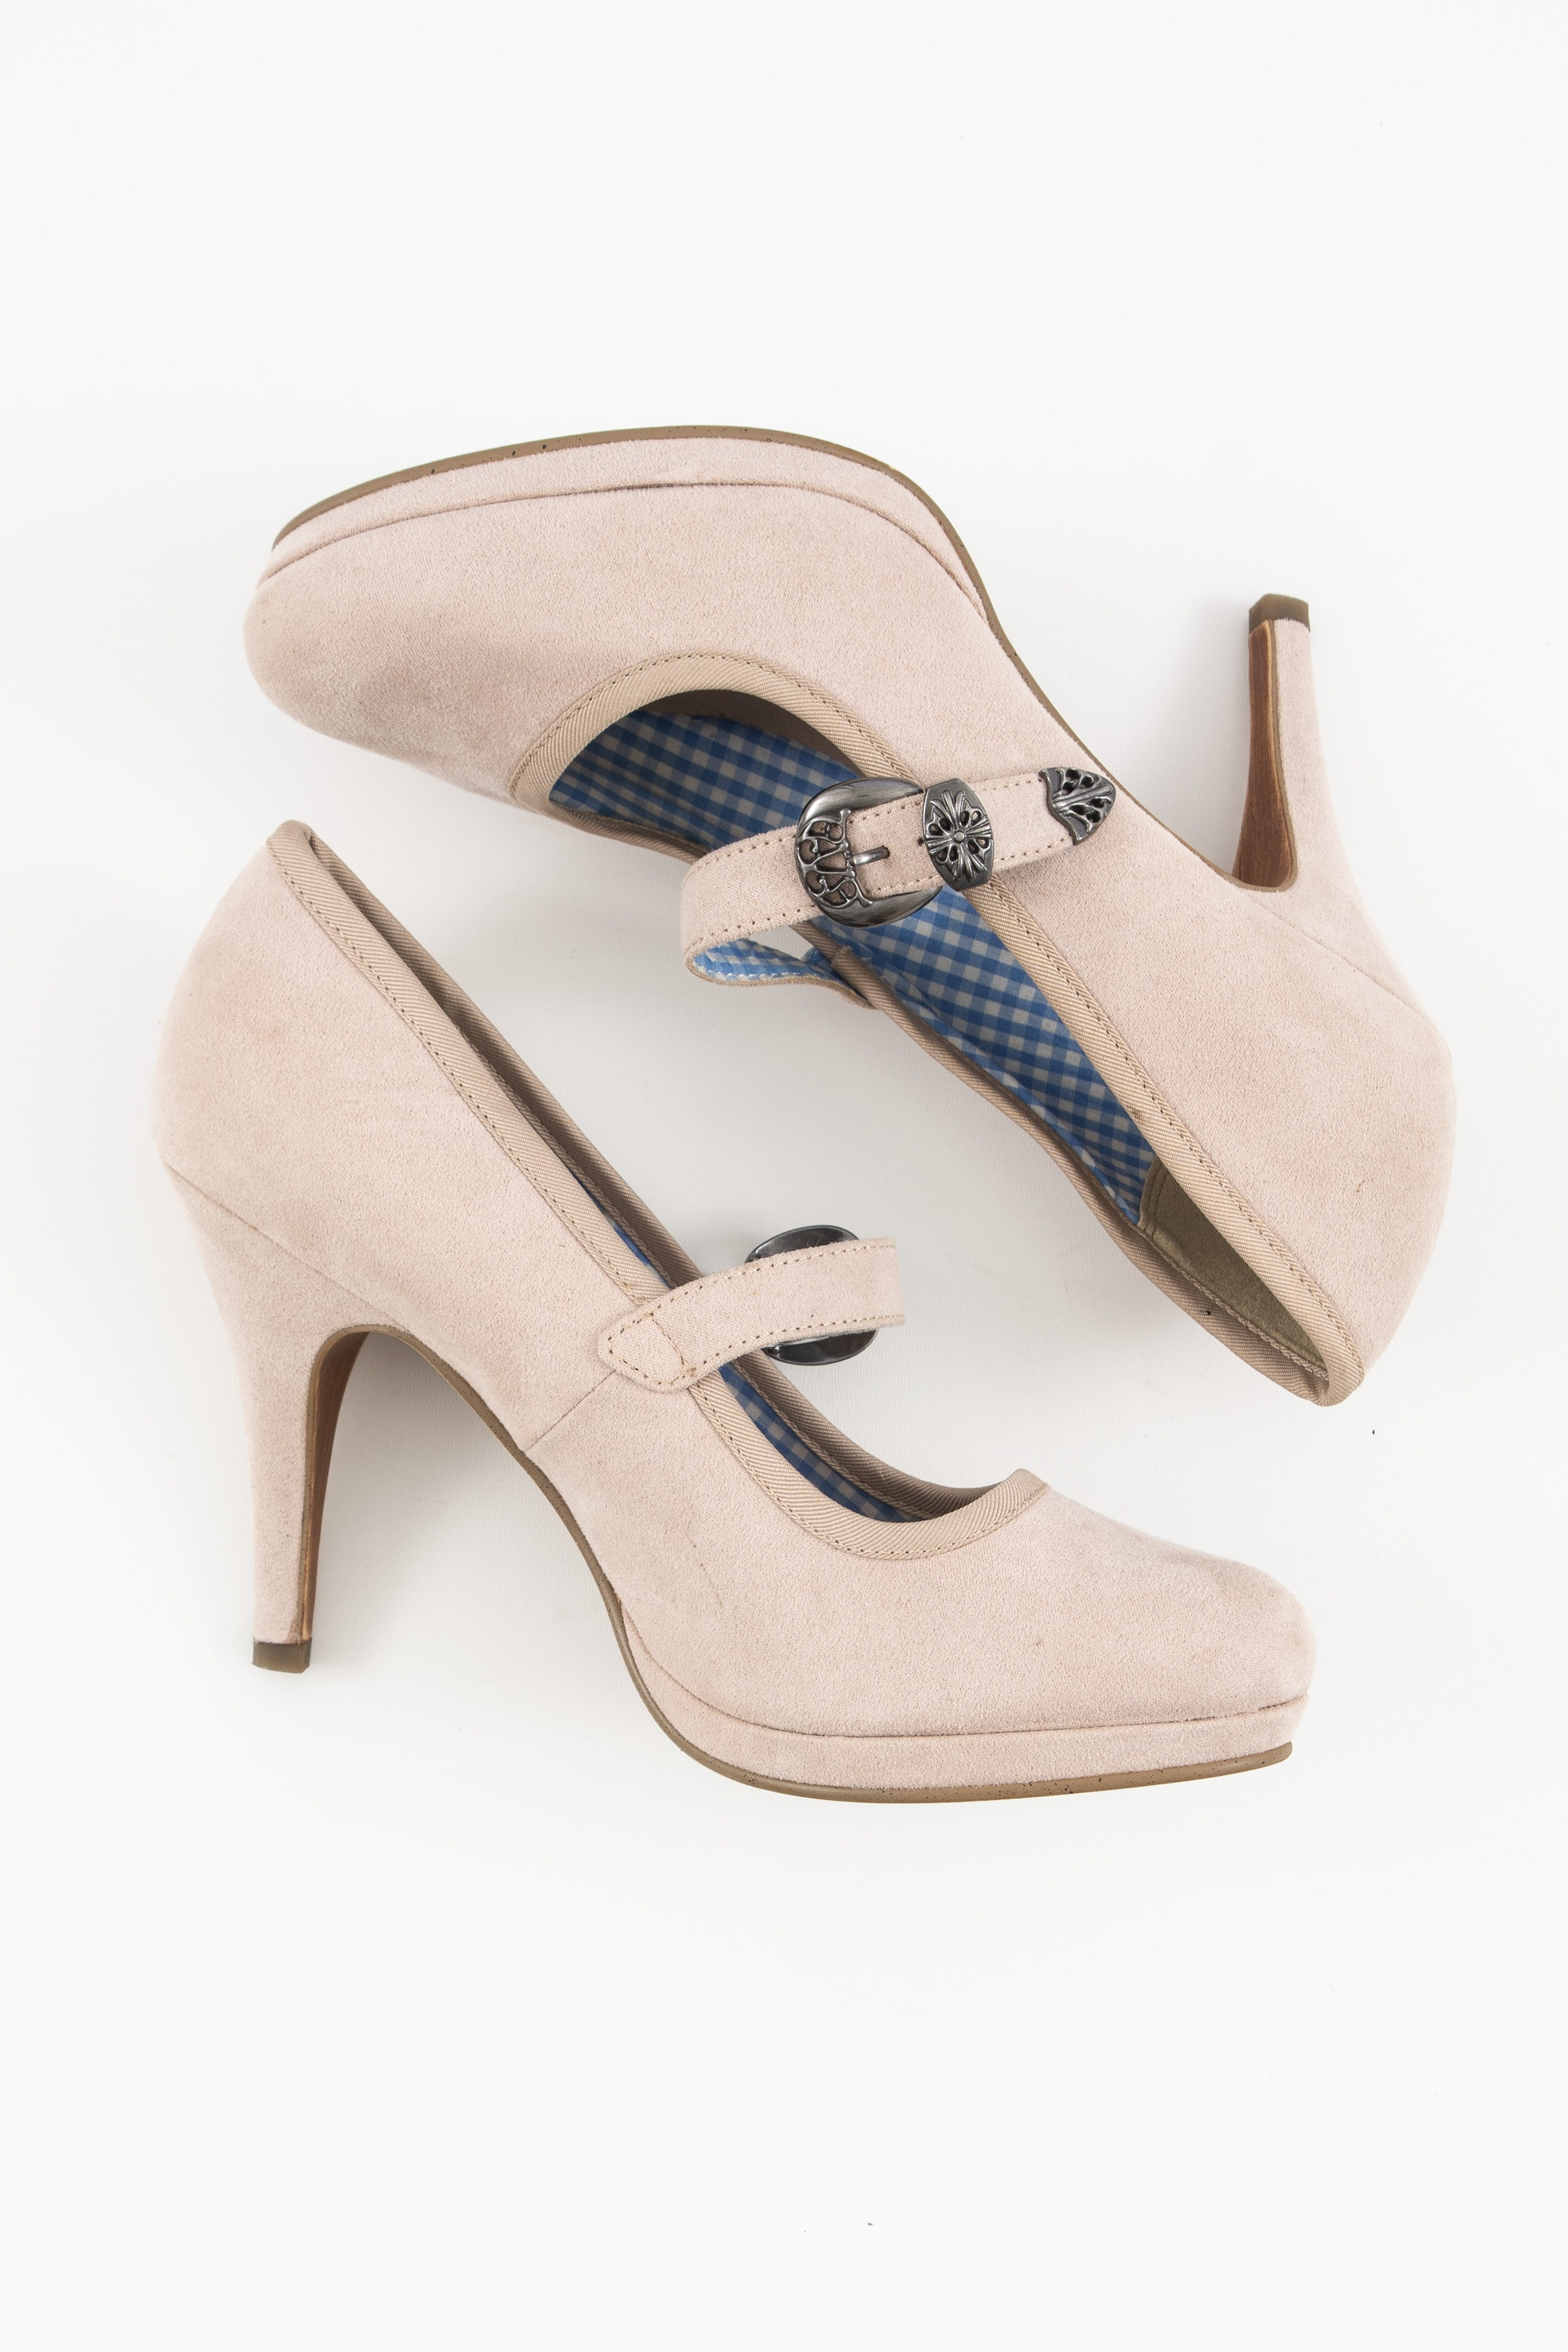 Tamaris Pumps Beige Gr.40